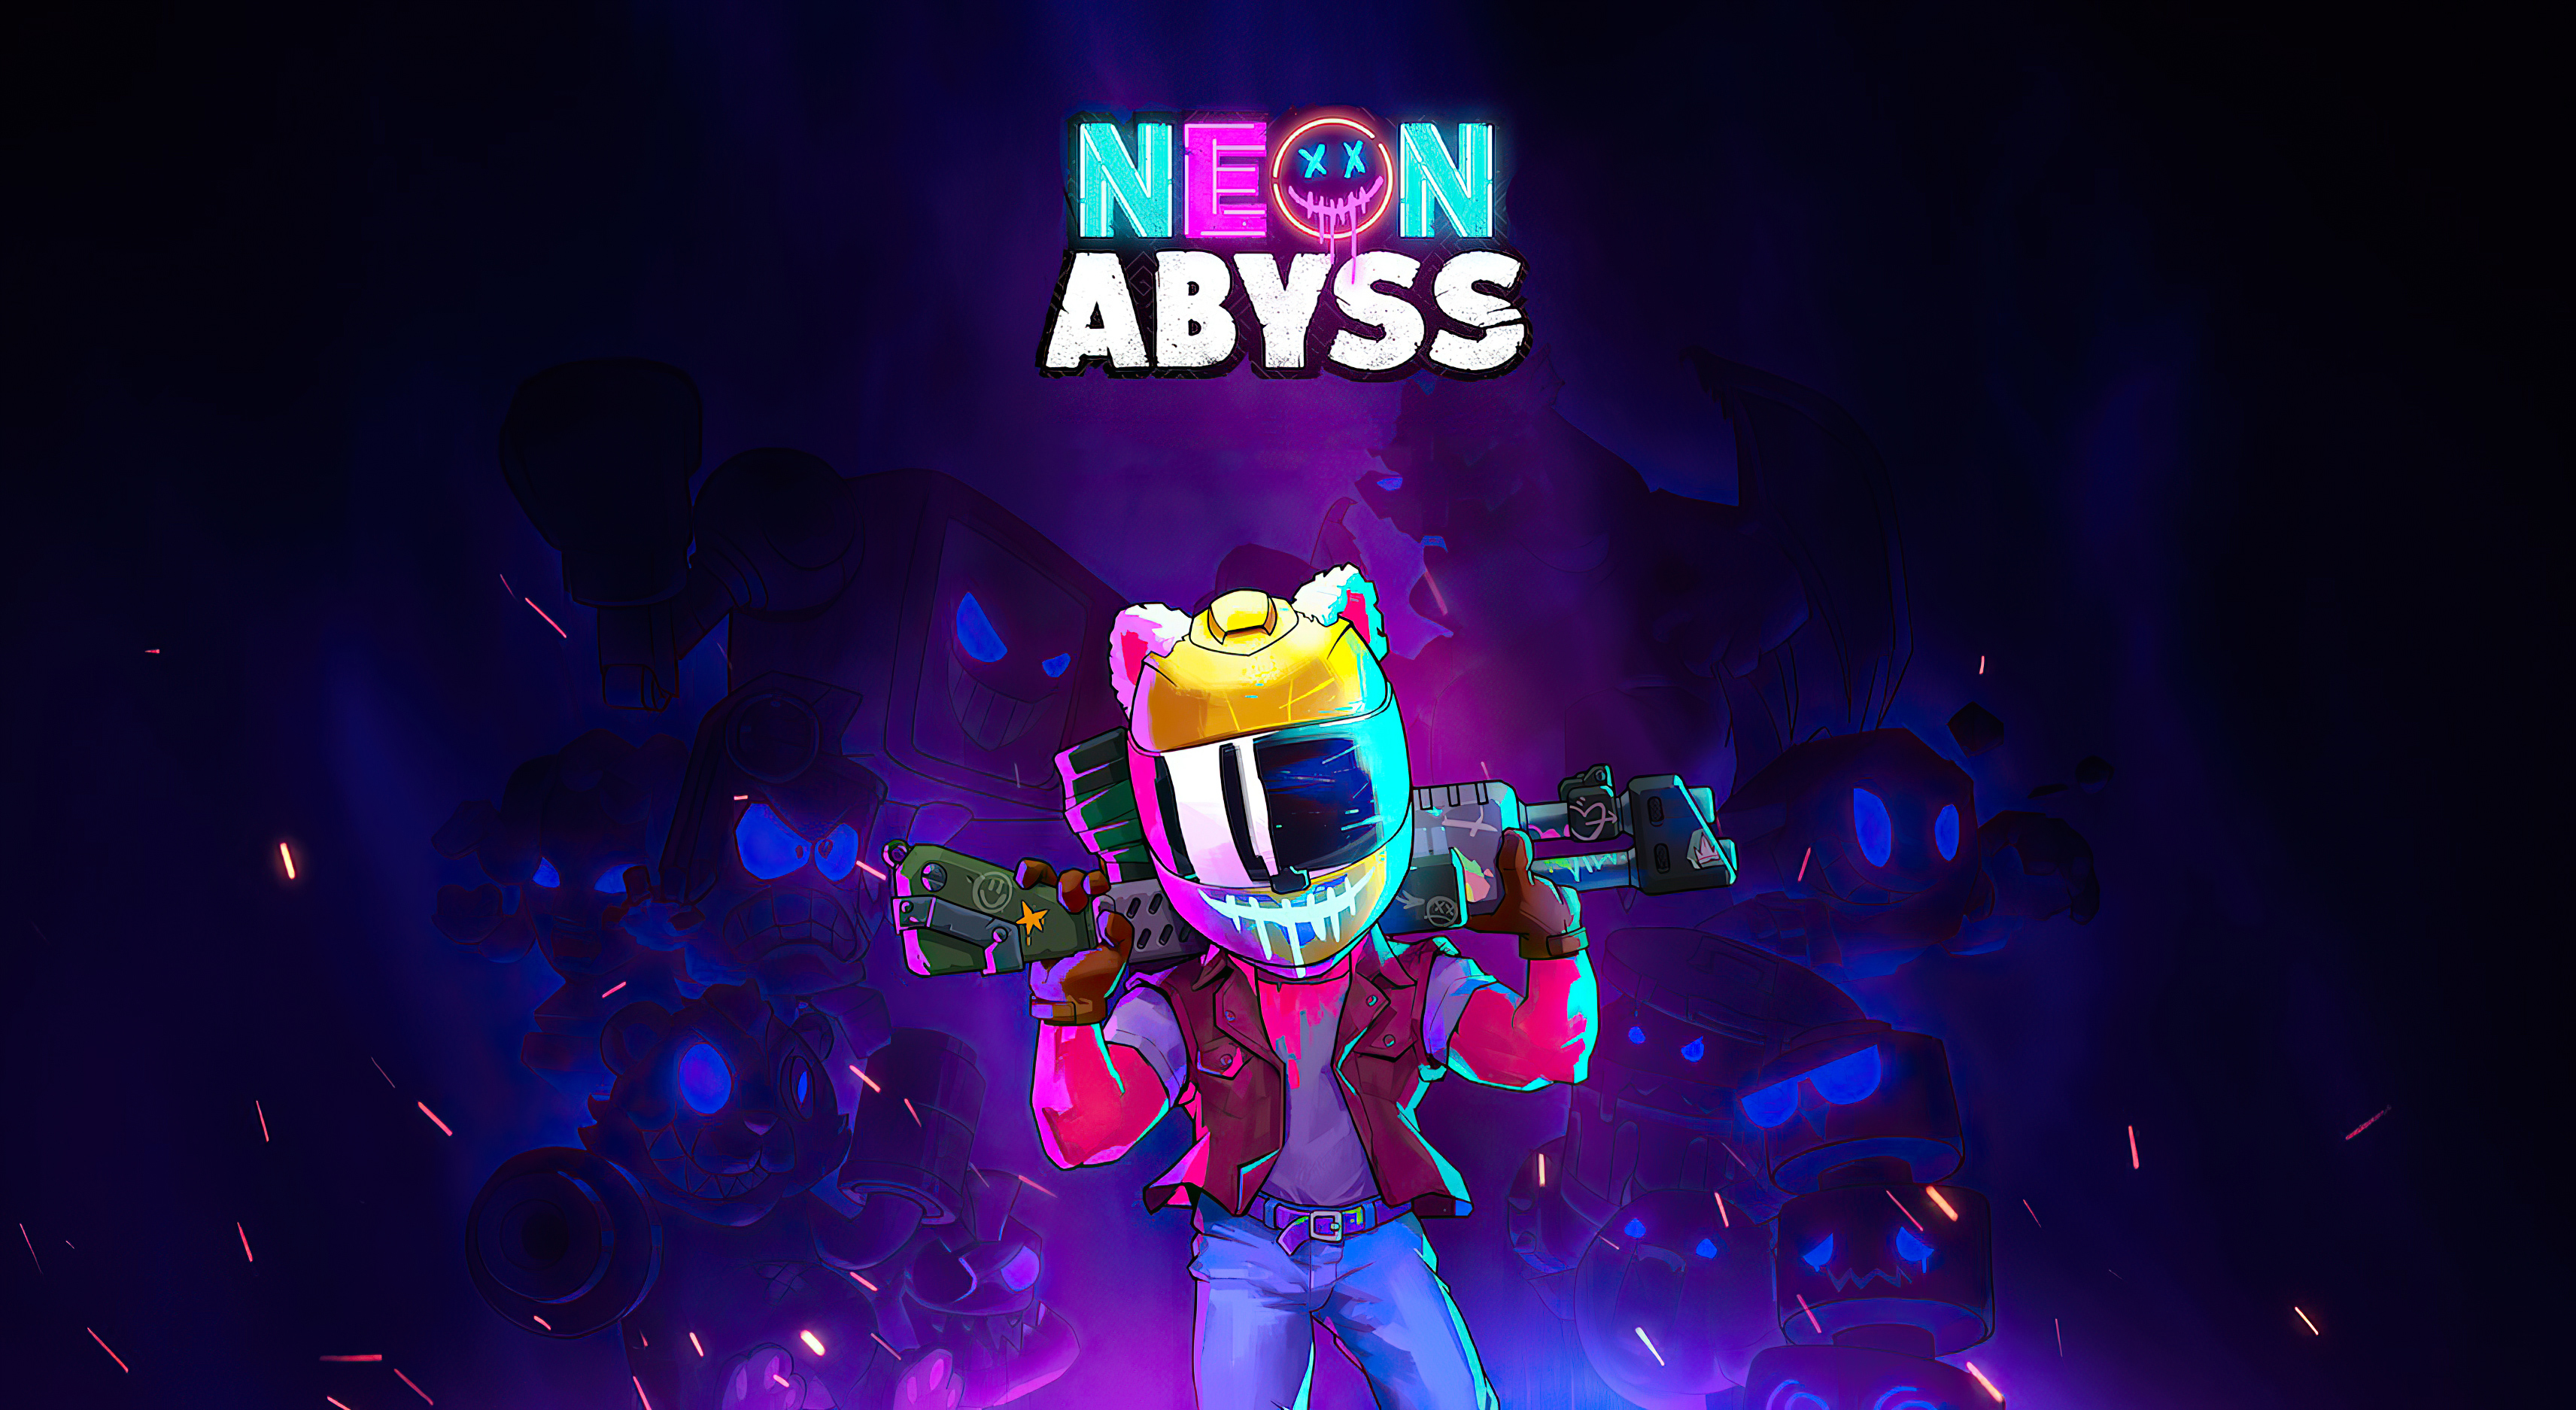 Neon Abyss Customize Your Death Hd Games 4k Wallpapers Images Backgrounds Photos And Pictures